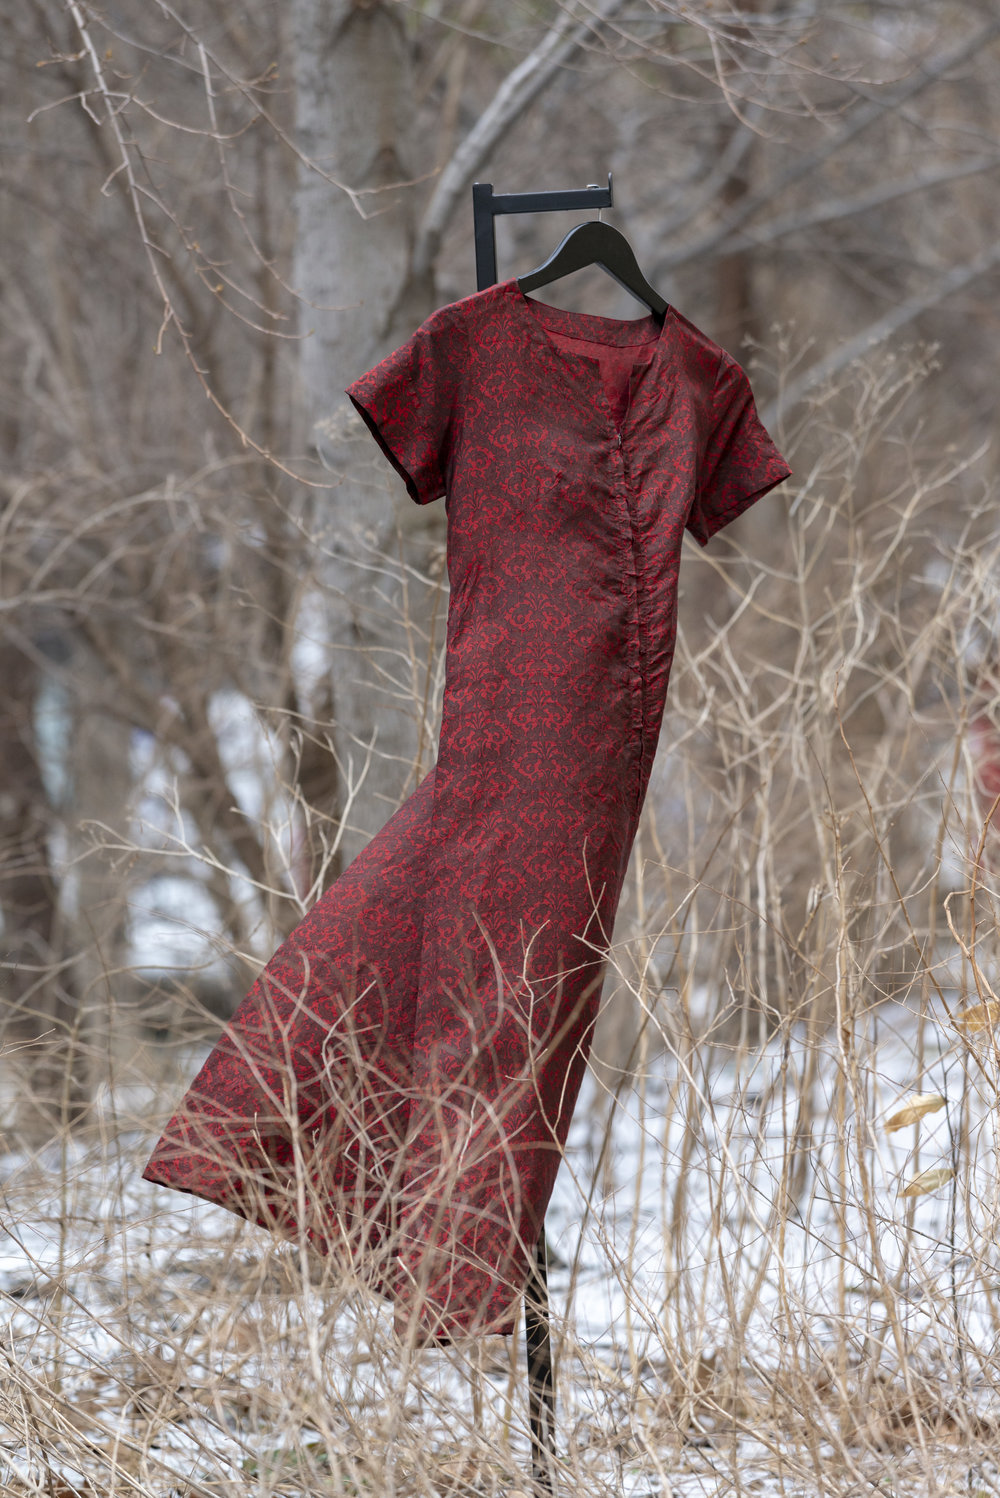 The REDress Project by Jaime Black